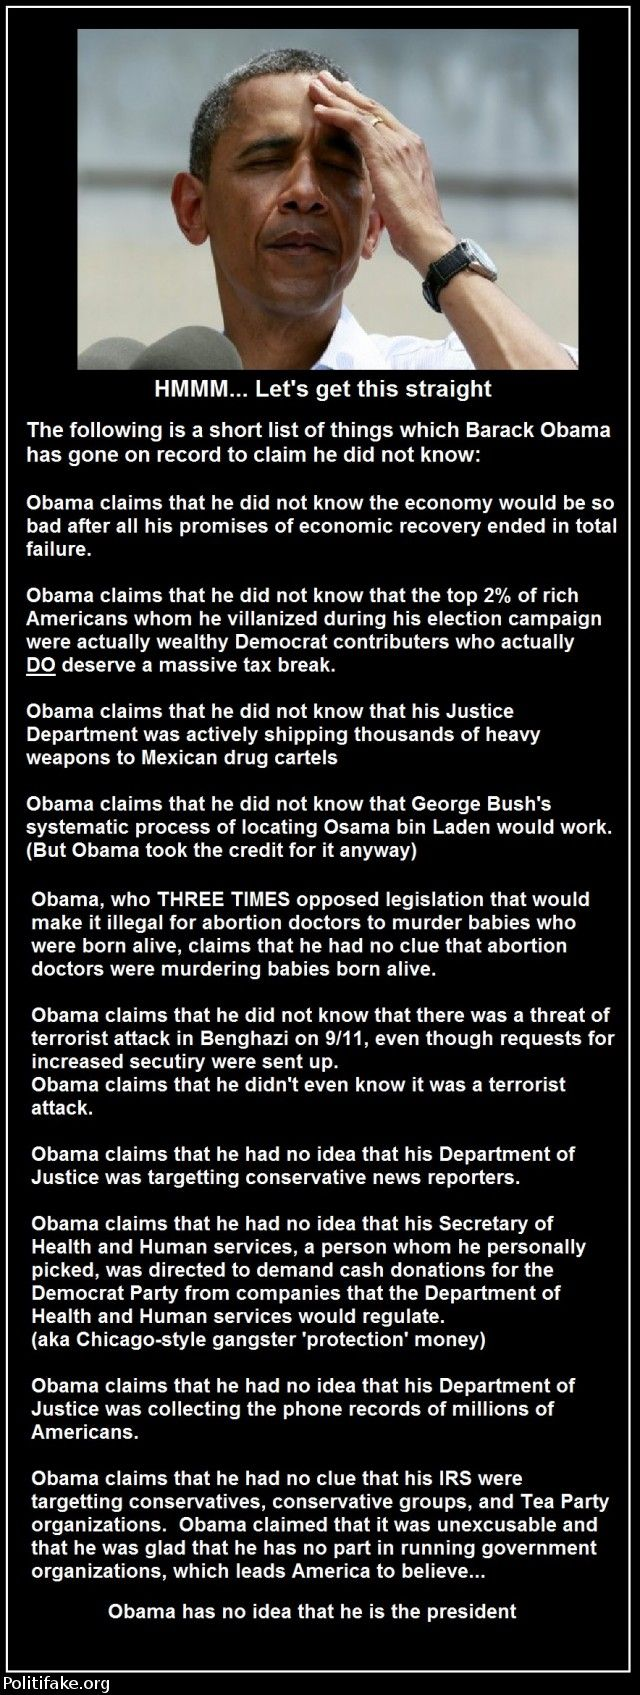 002 Pin on Obama AXIS OF EVIL!